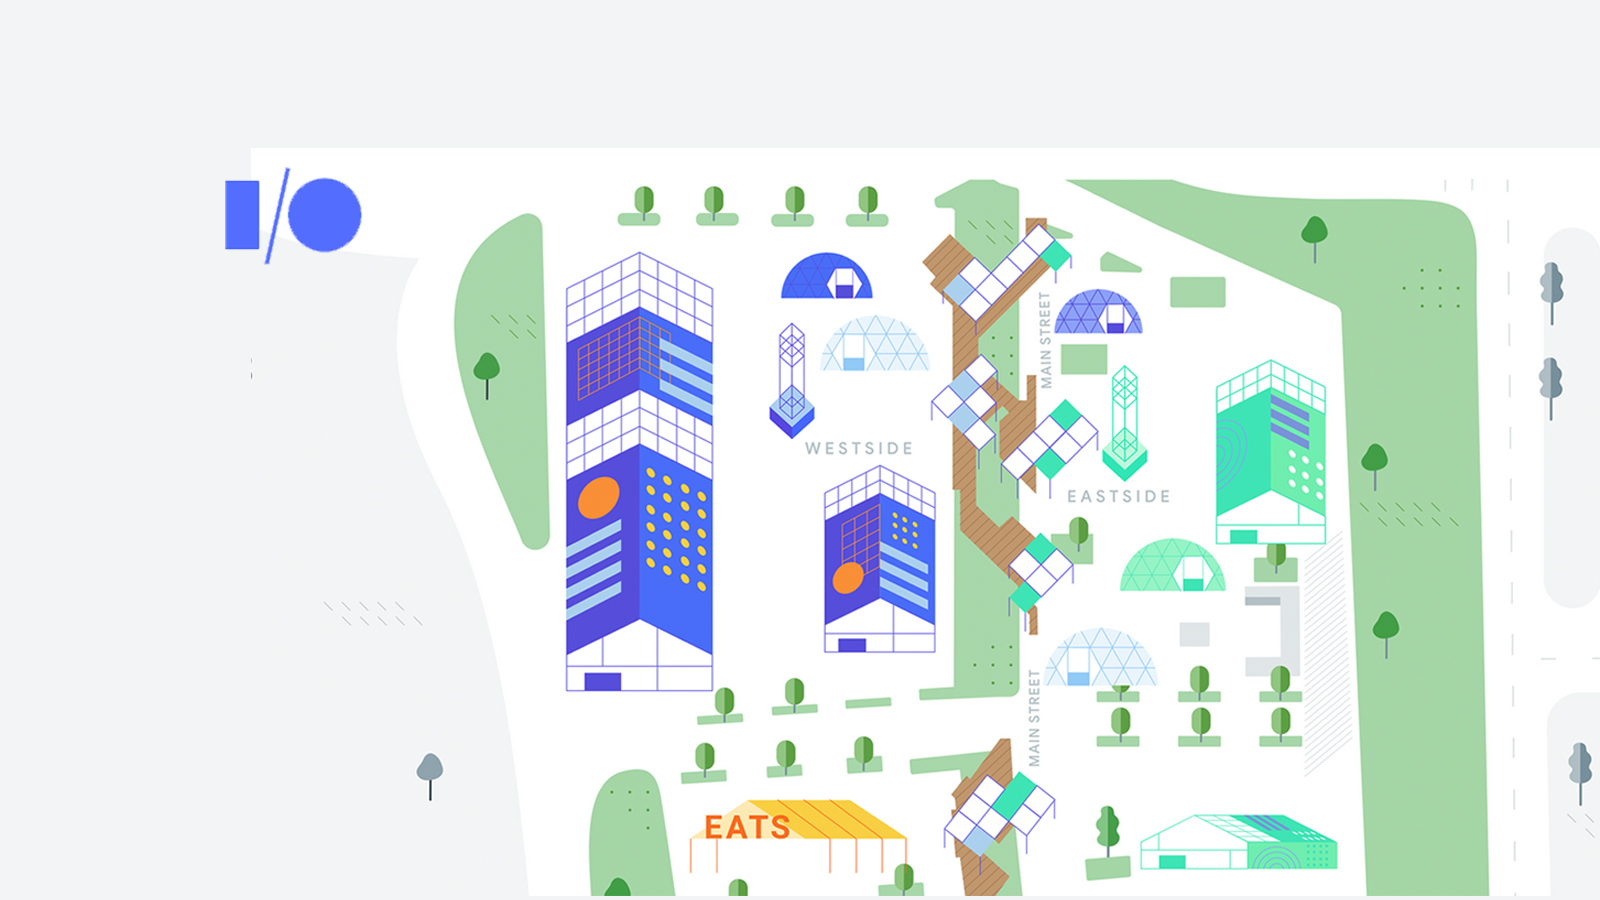 10 Top Takeaways from Google I/O 2018: Duplex, istant ... Different Voices For Google Maps on lync voice, your tone of voice, allstate voice, adobe voice, aflac voice, passive voice, search by voice, find your voice, no voice, world voice, android voice,